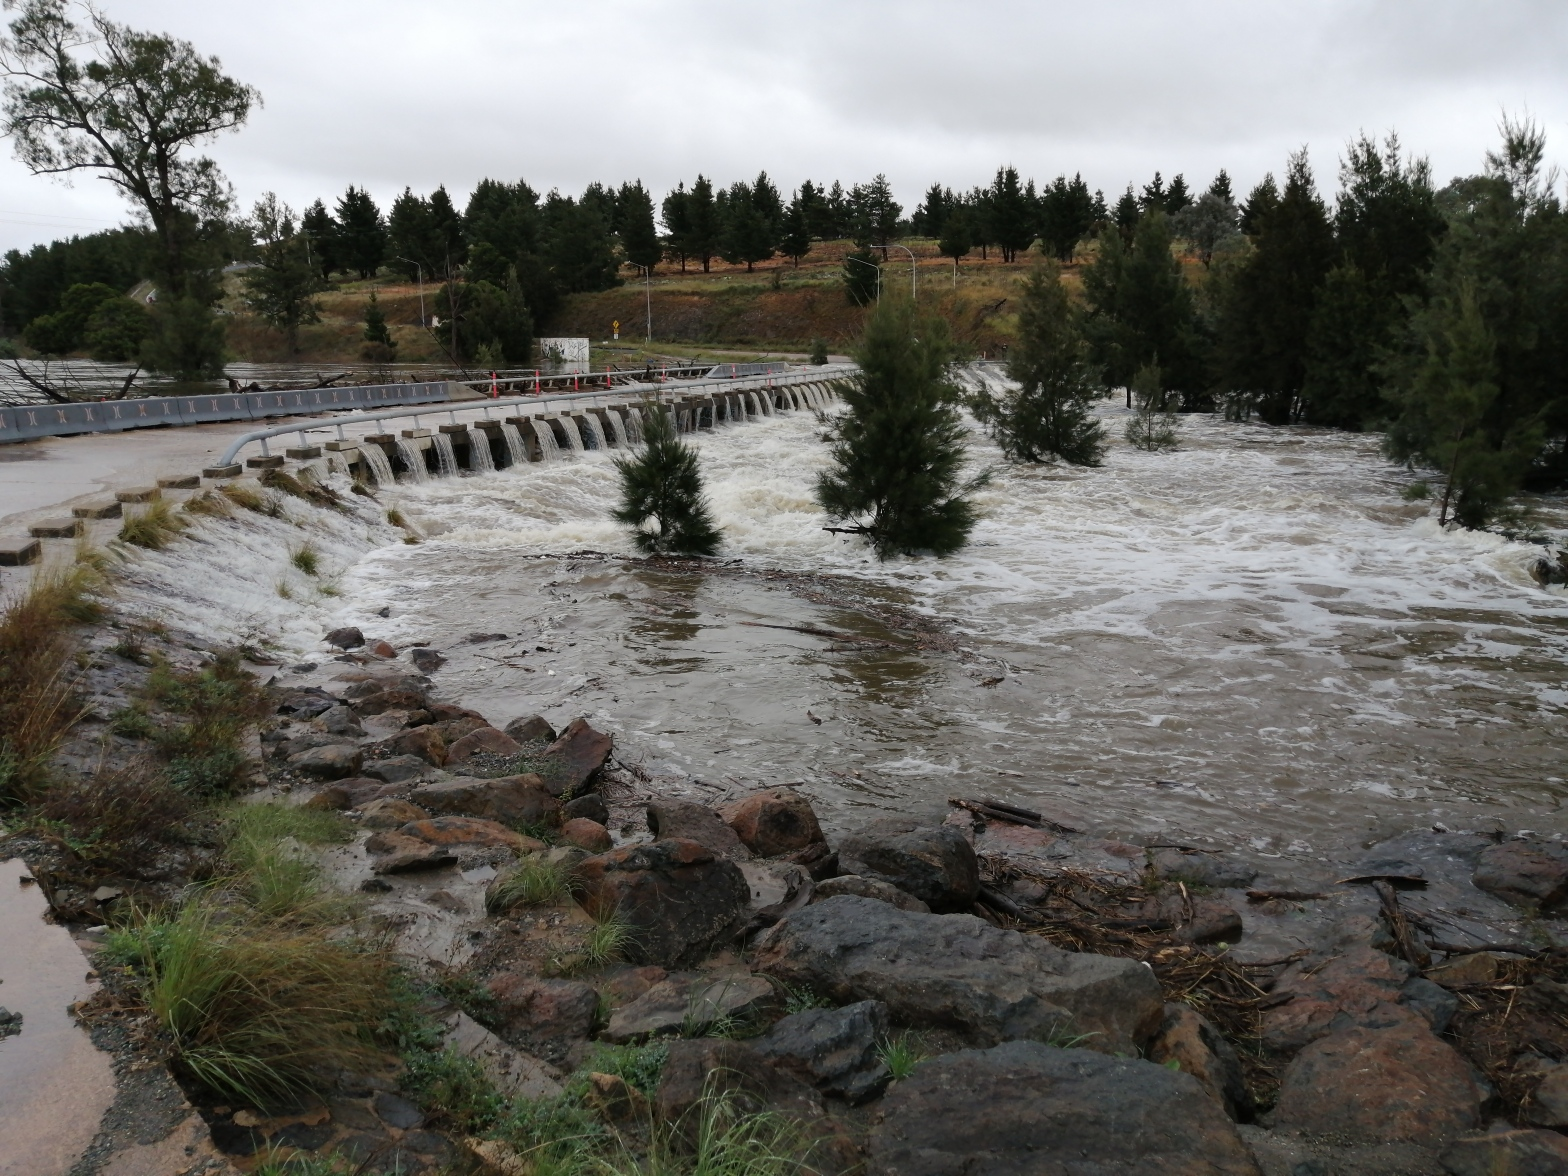 Floods, Coppins Crossing, Molonglo River, Molonglo Valley, 24 March 2021